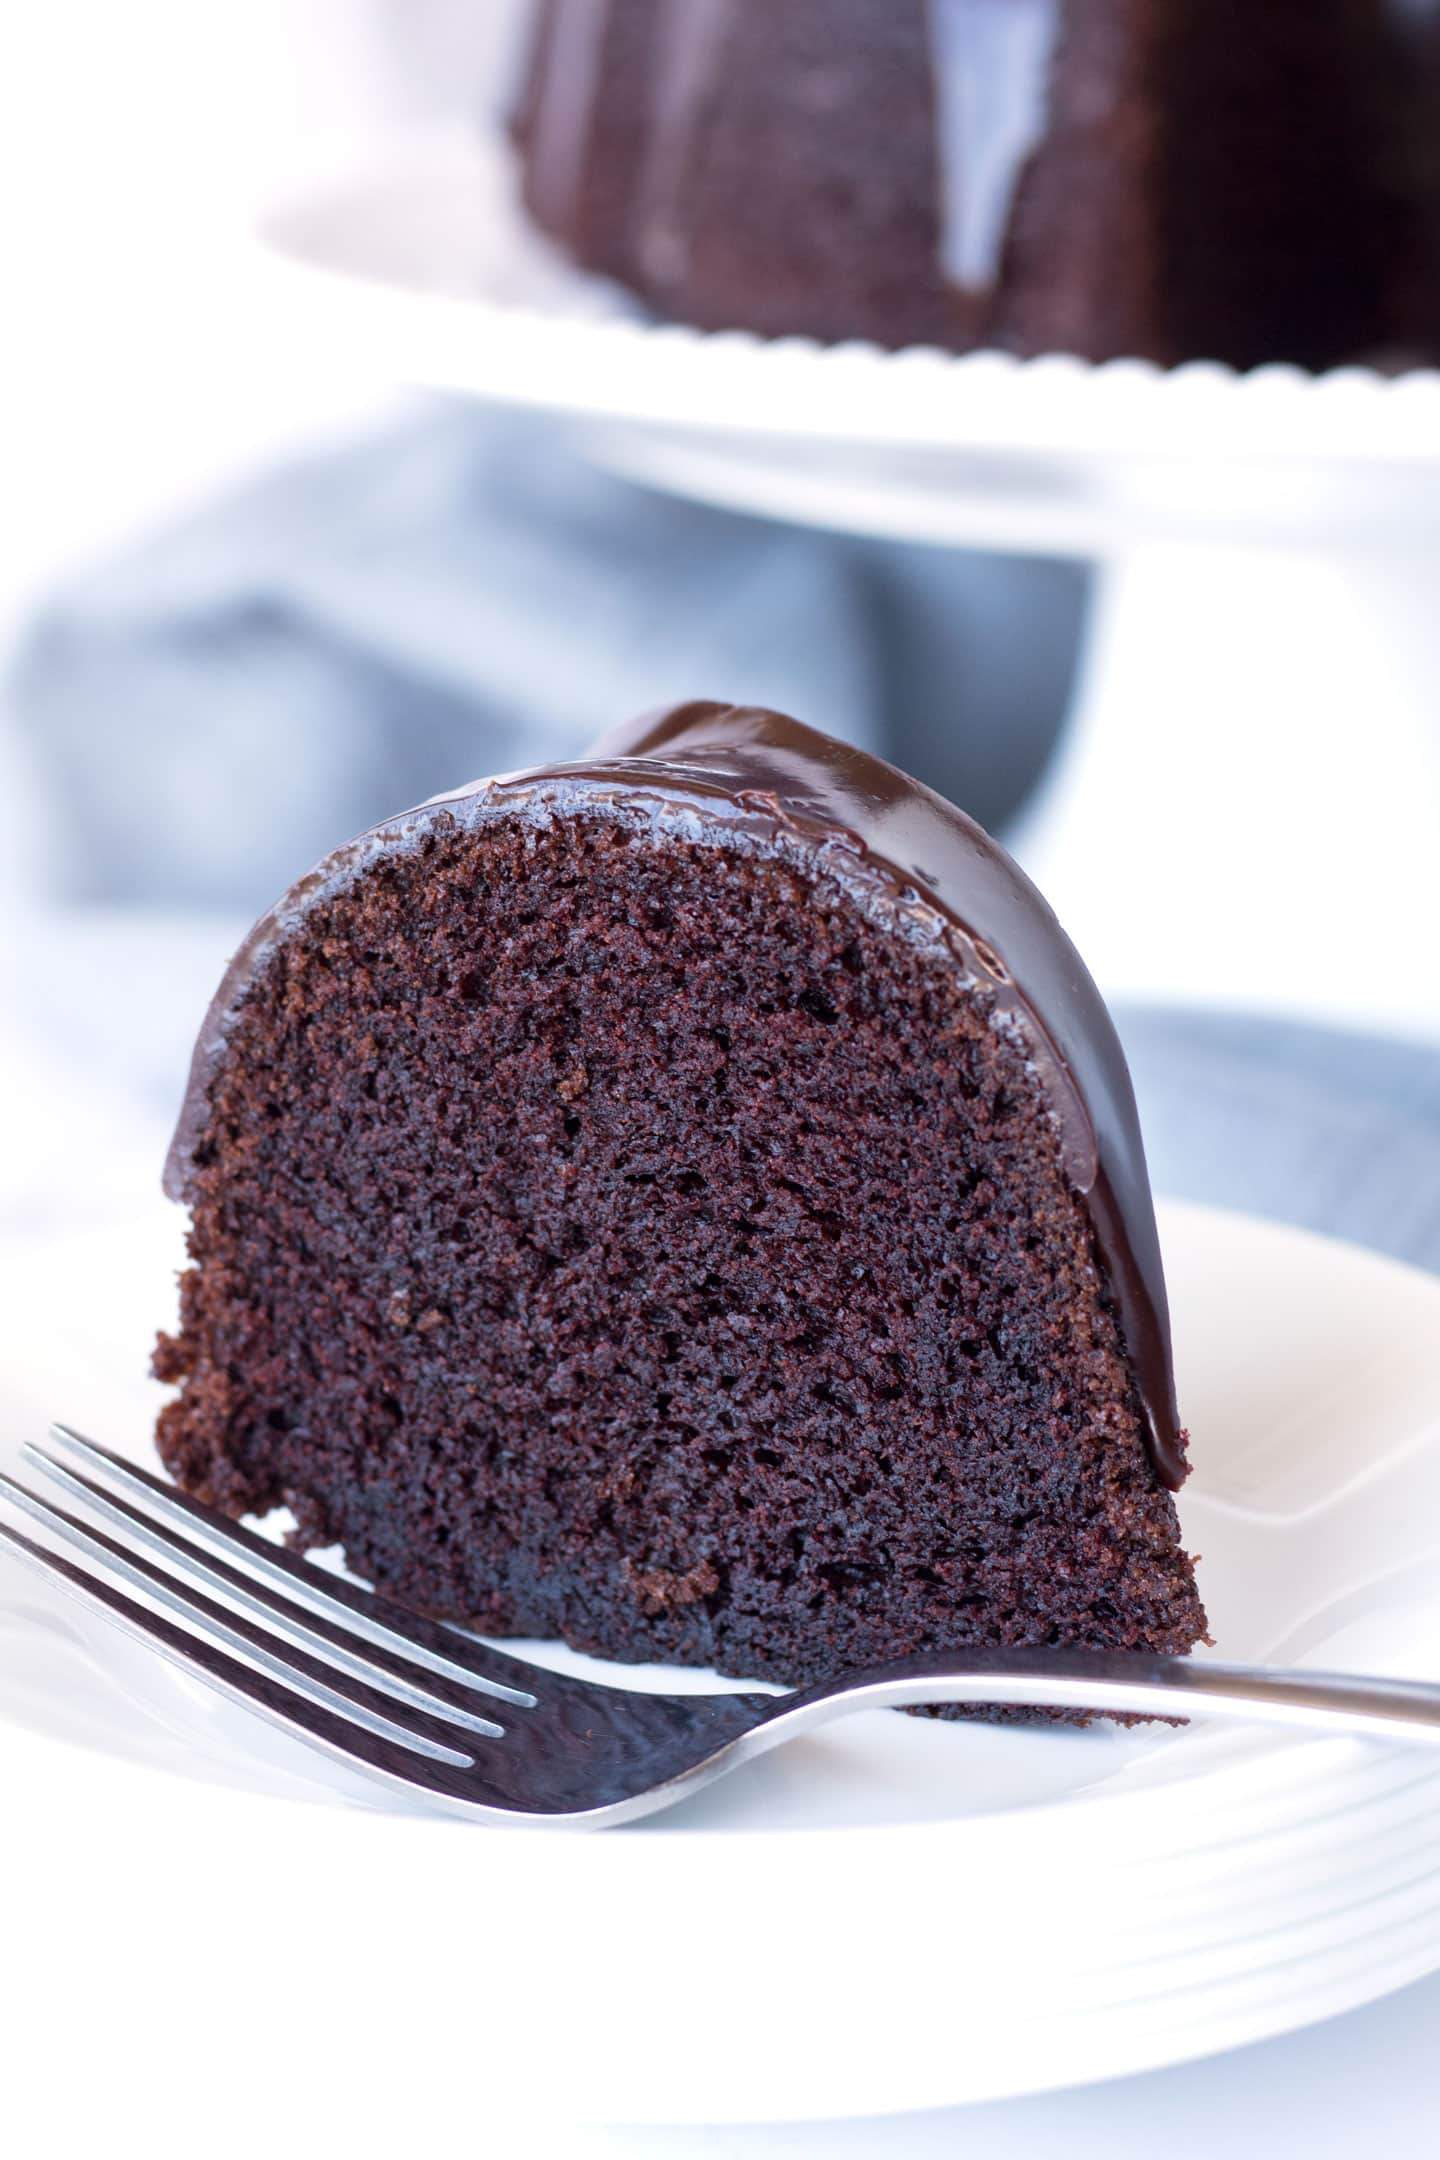 Slice of The Perfect Chocolate Bundt Cake on plate with fork